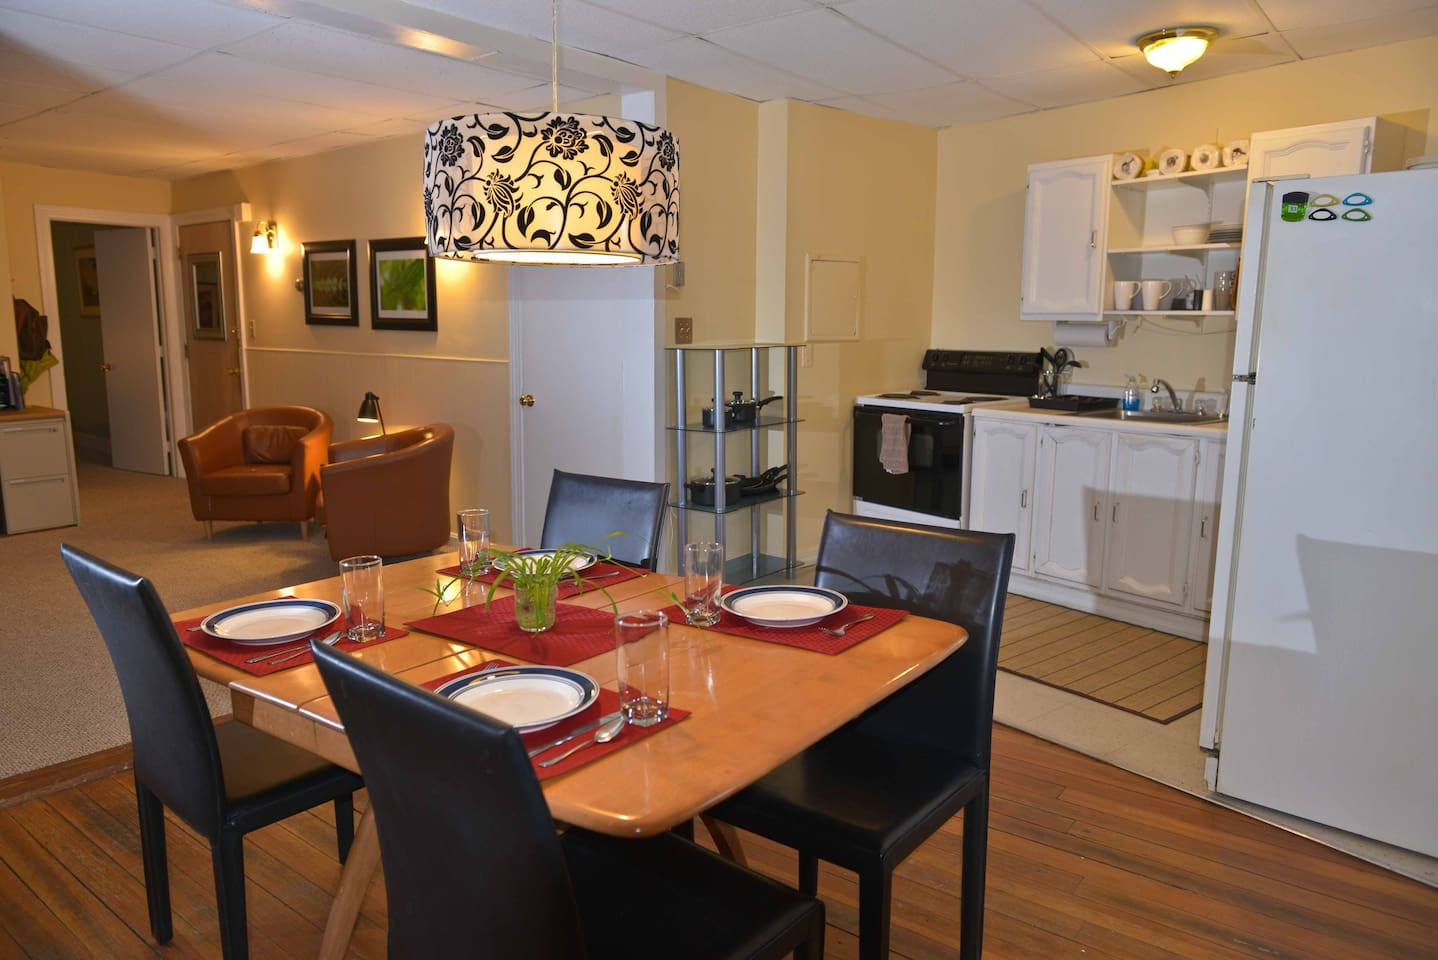 Fully equipped kitchen and a big table to spread out a nice meal!